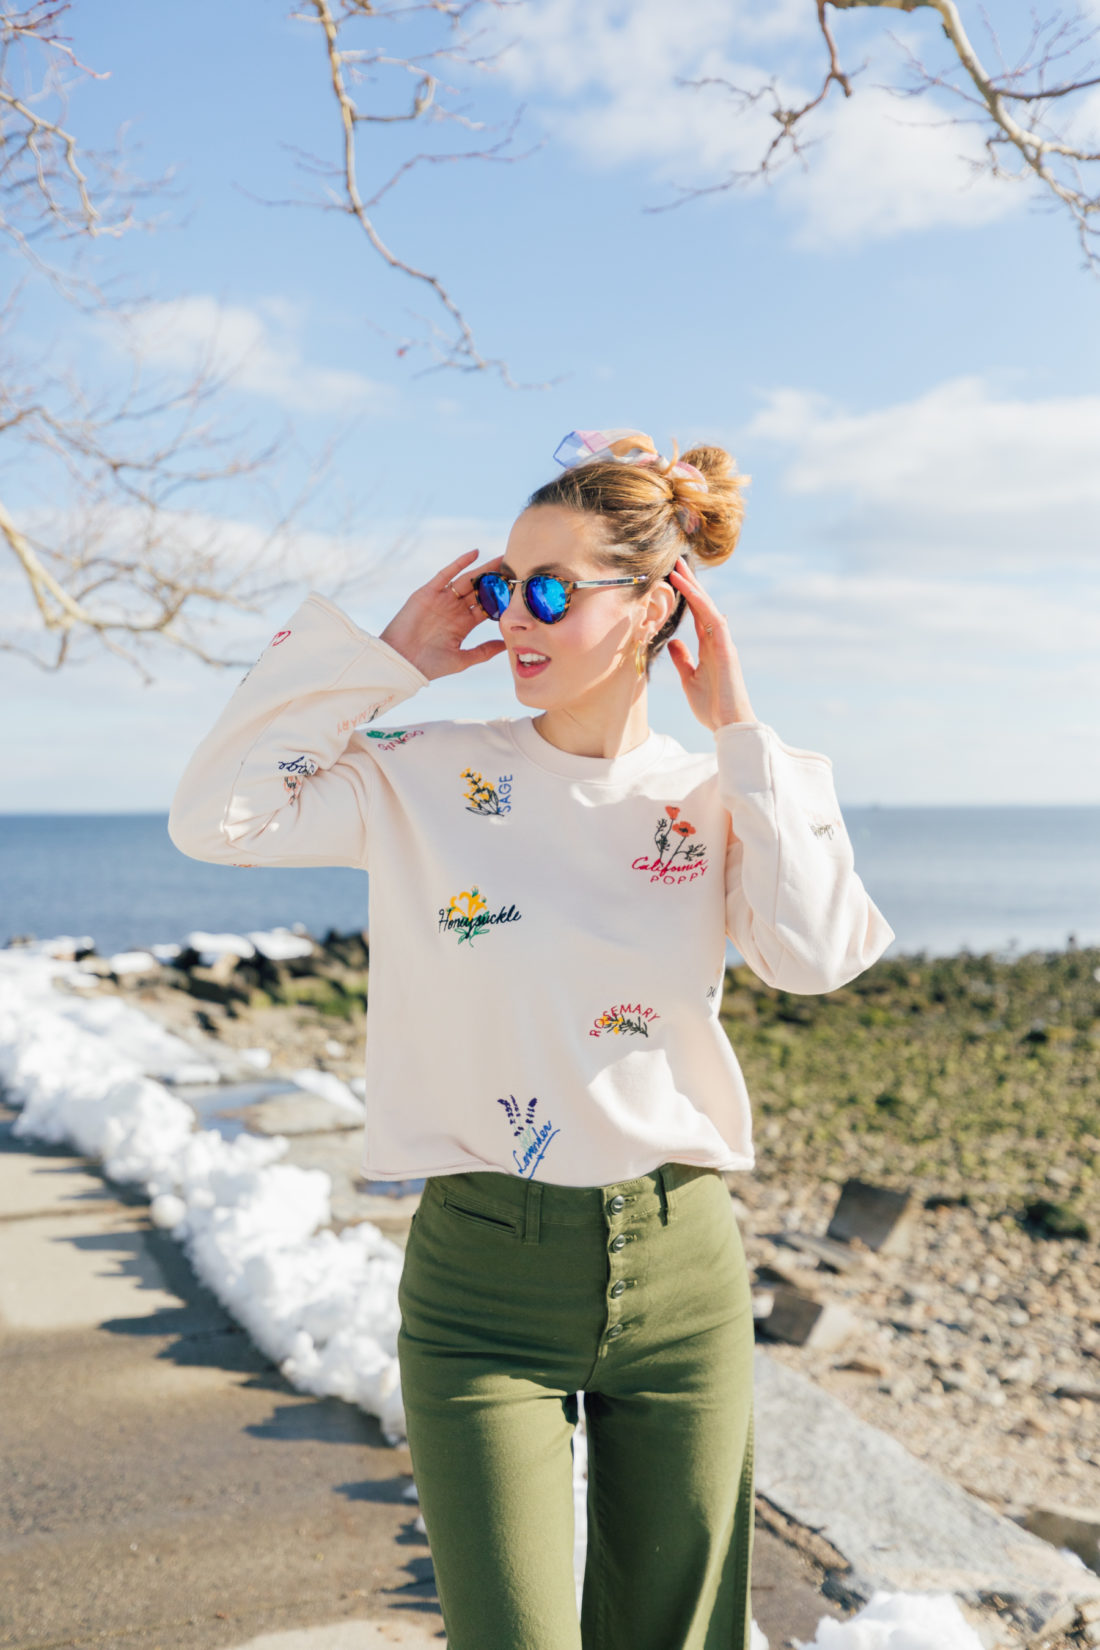 Eva Amurri Martino of Happily Eva After wears a kerchief bun in her hair and shares her favorite sunglasses for spring 2019